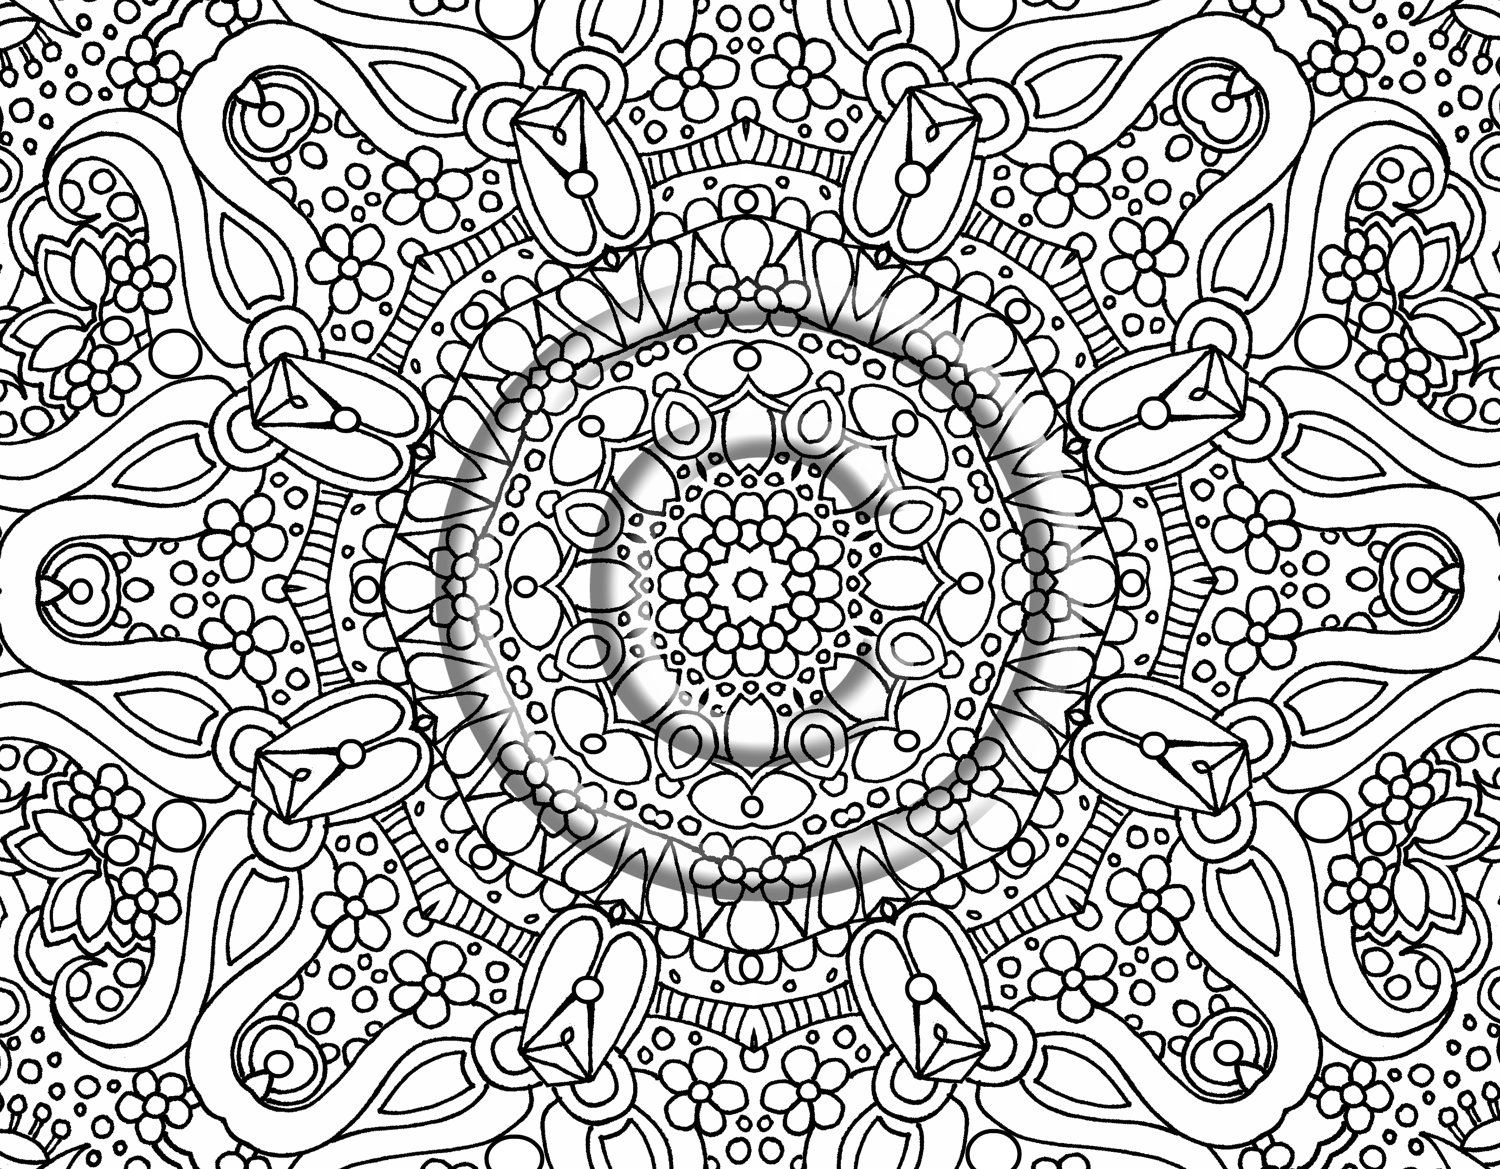 Printable drawing pages for adults - Hard Coloring Pages